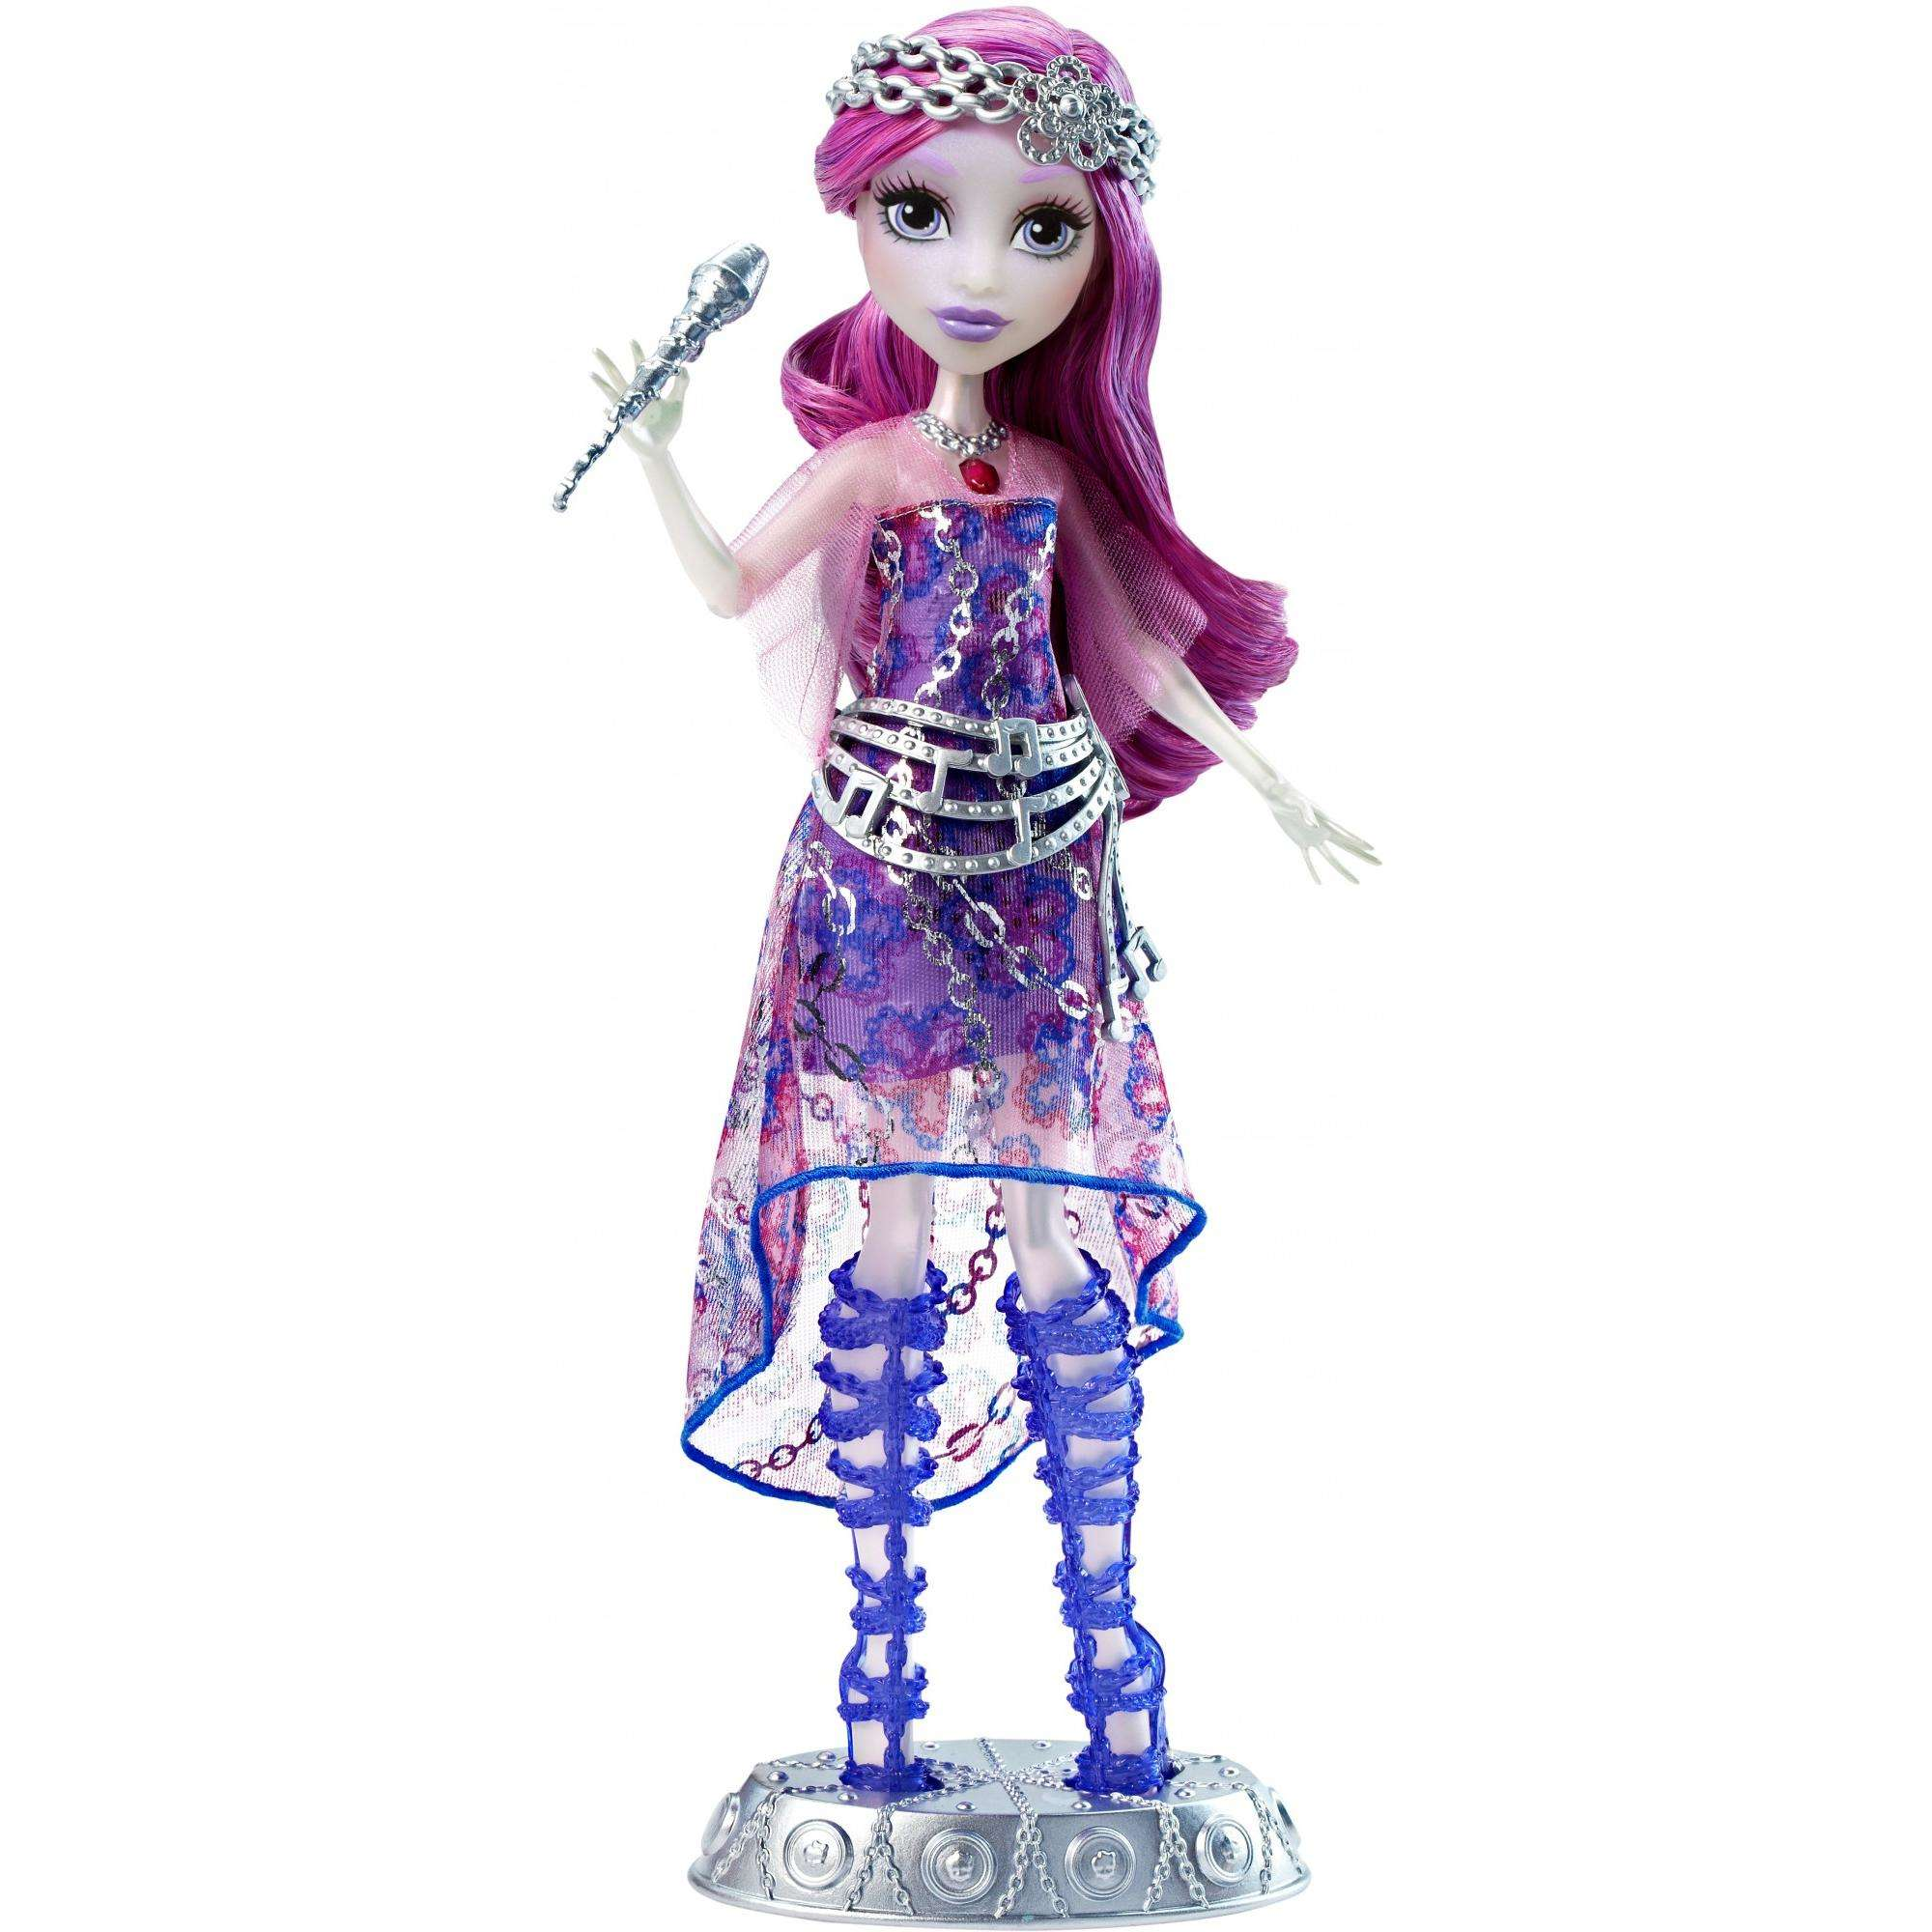 Monster High Welcome To Monster High Singing Popstar Ari Hauntington Doll by Mattel